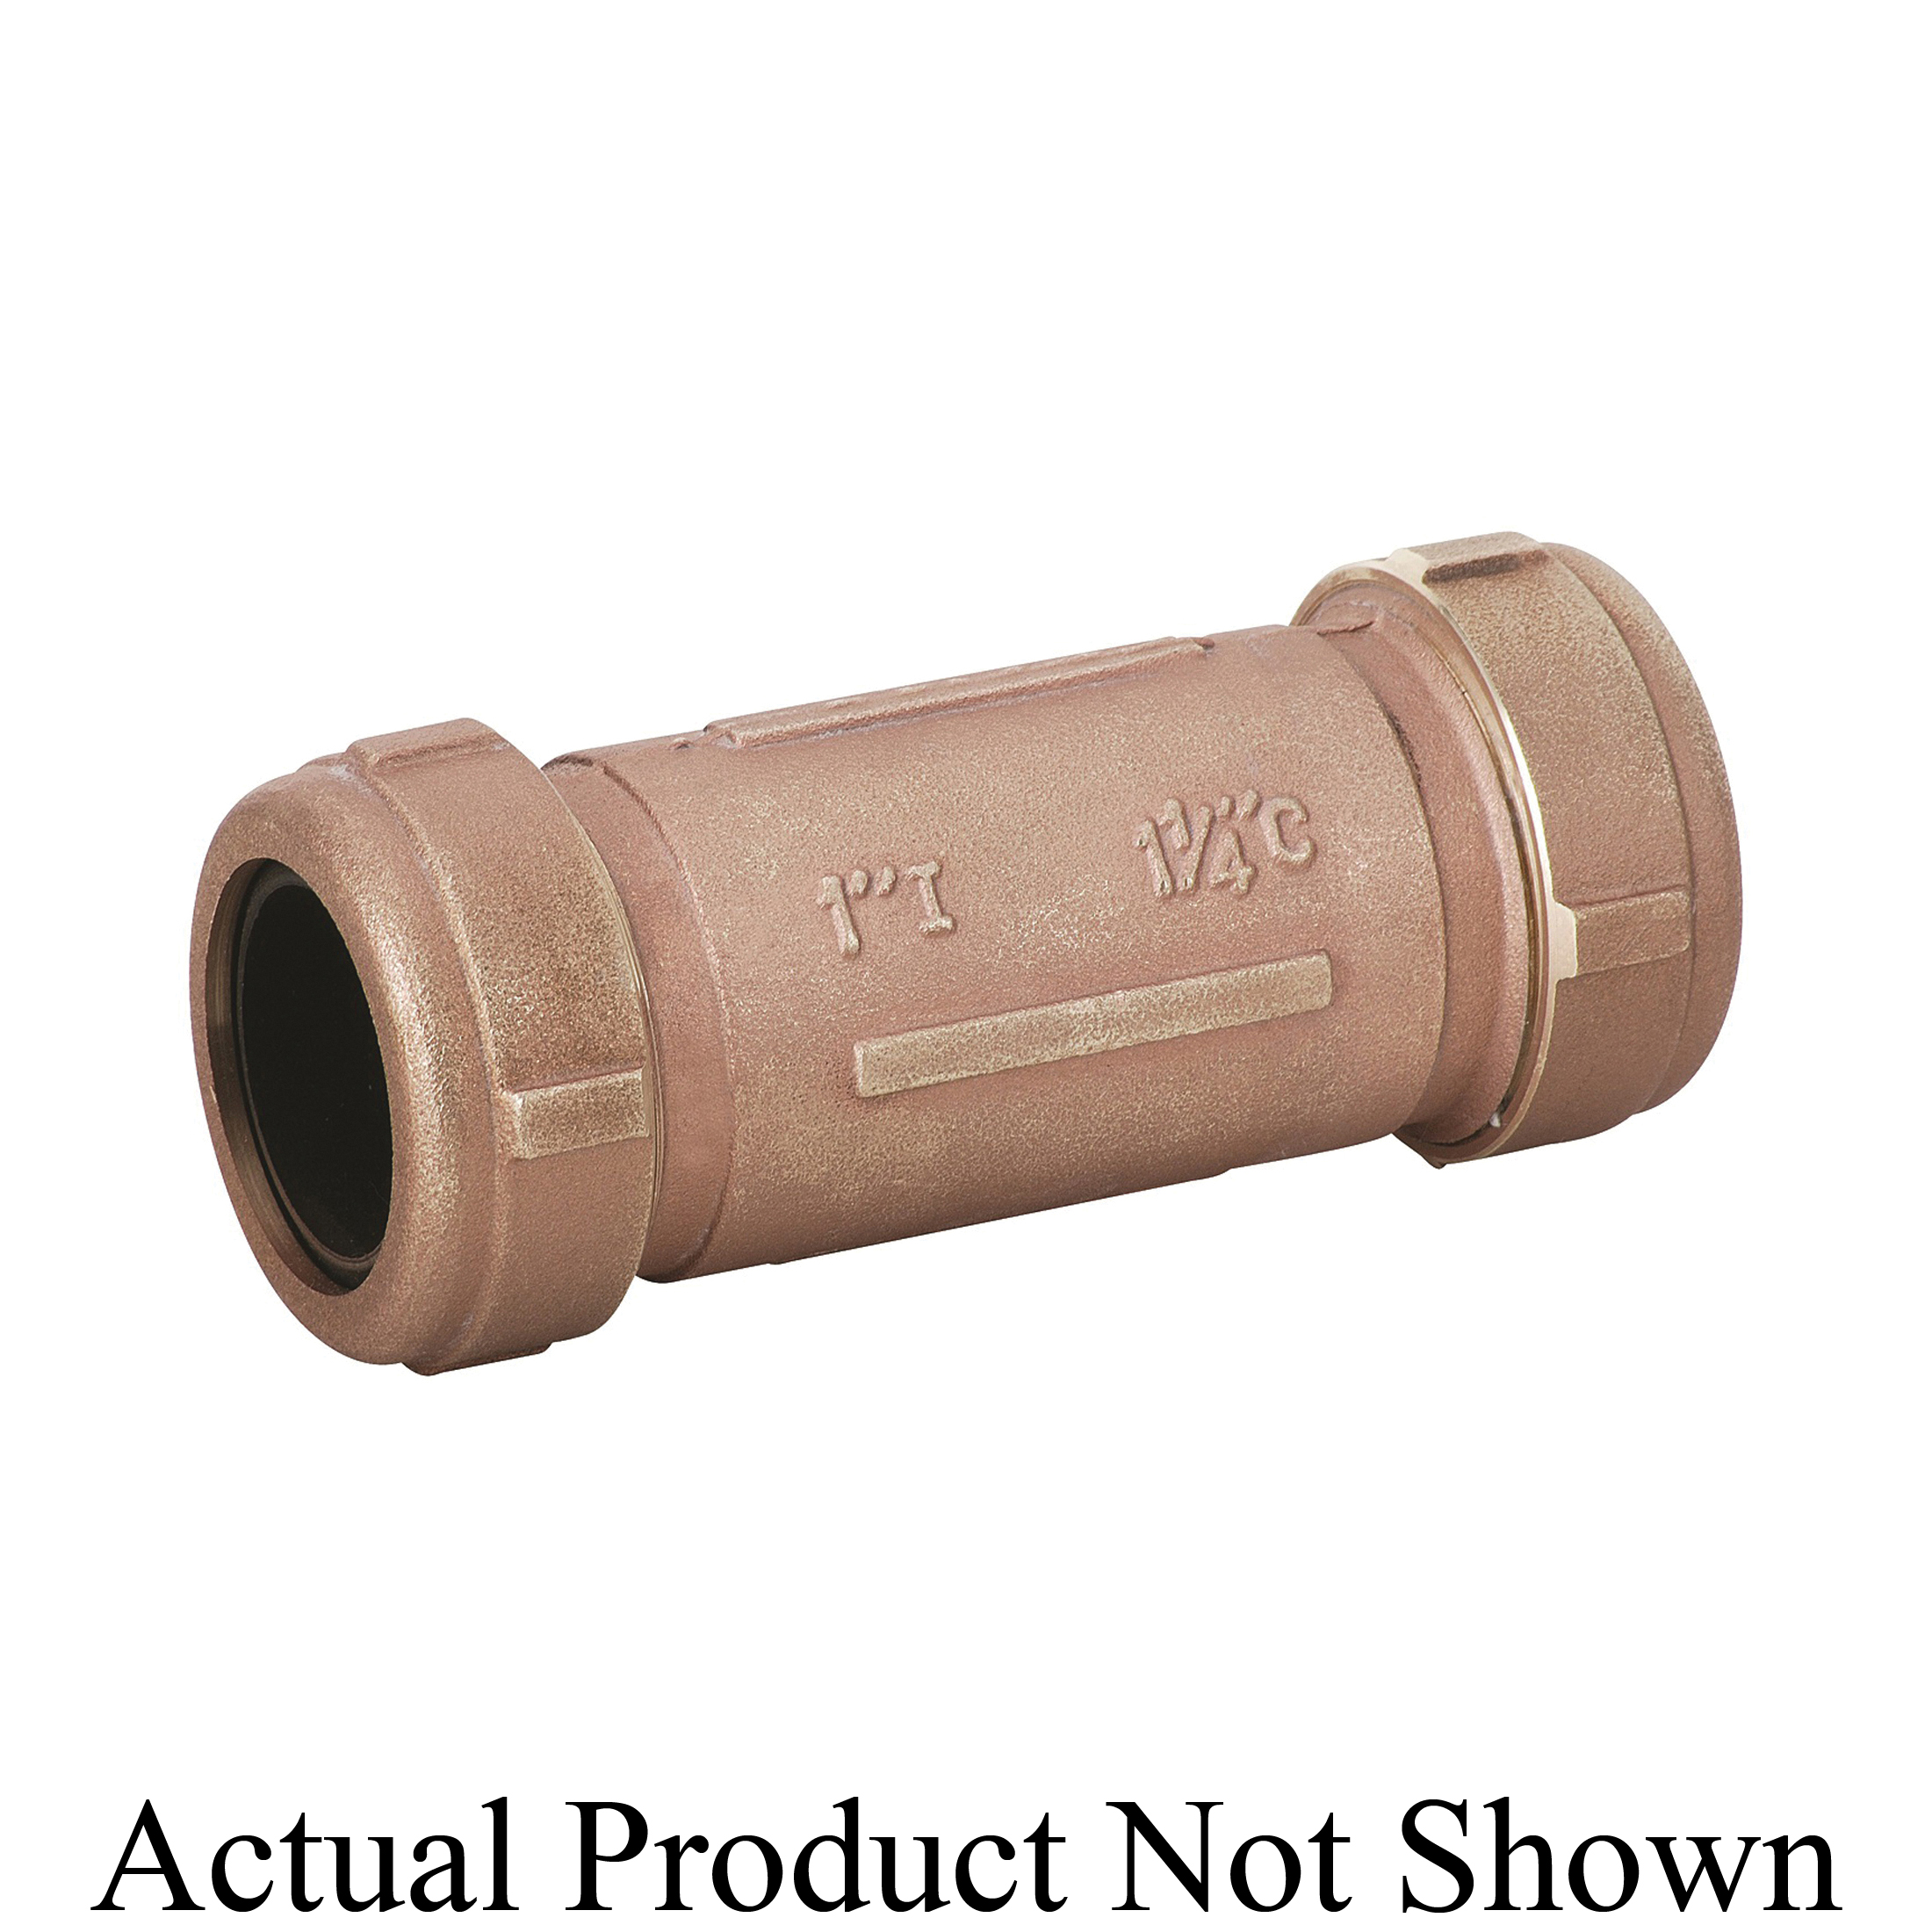 Matco-Norca™ 450L06LF 450LLF Long Compression Coupling, 1-1/4 x 1-1/2 in Nominal, IPS x CTS End Style, Brass, Import